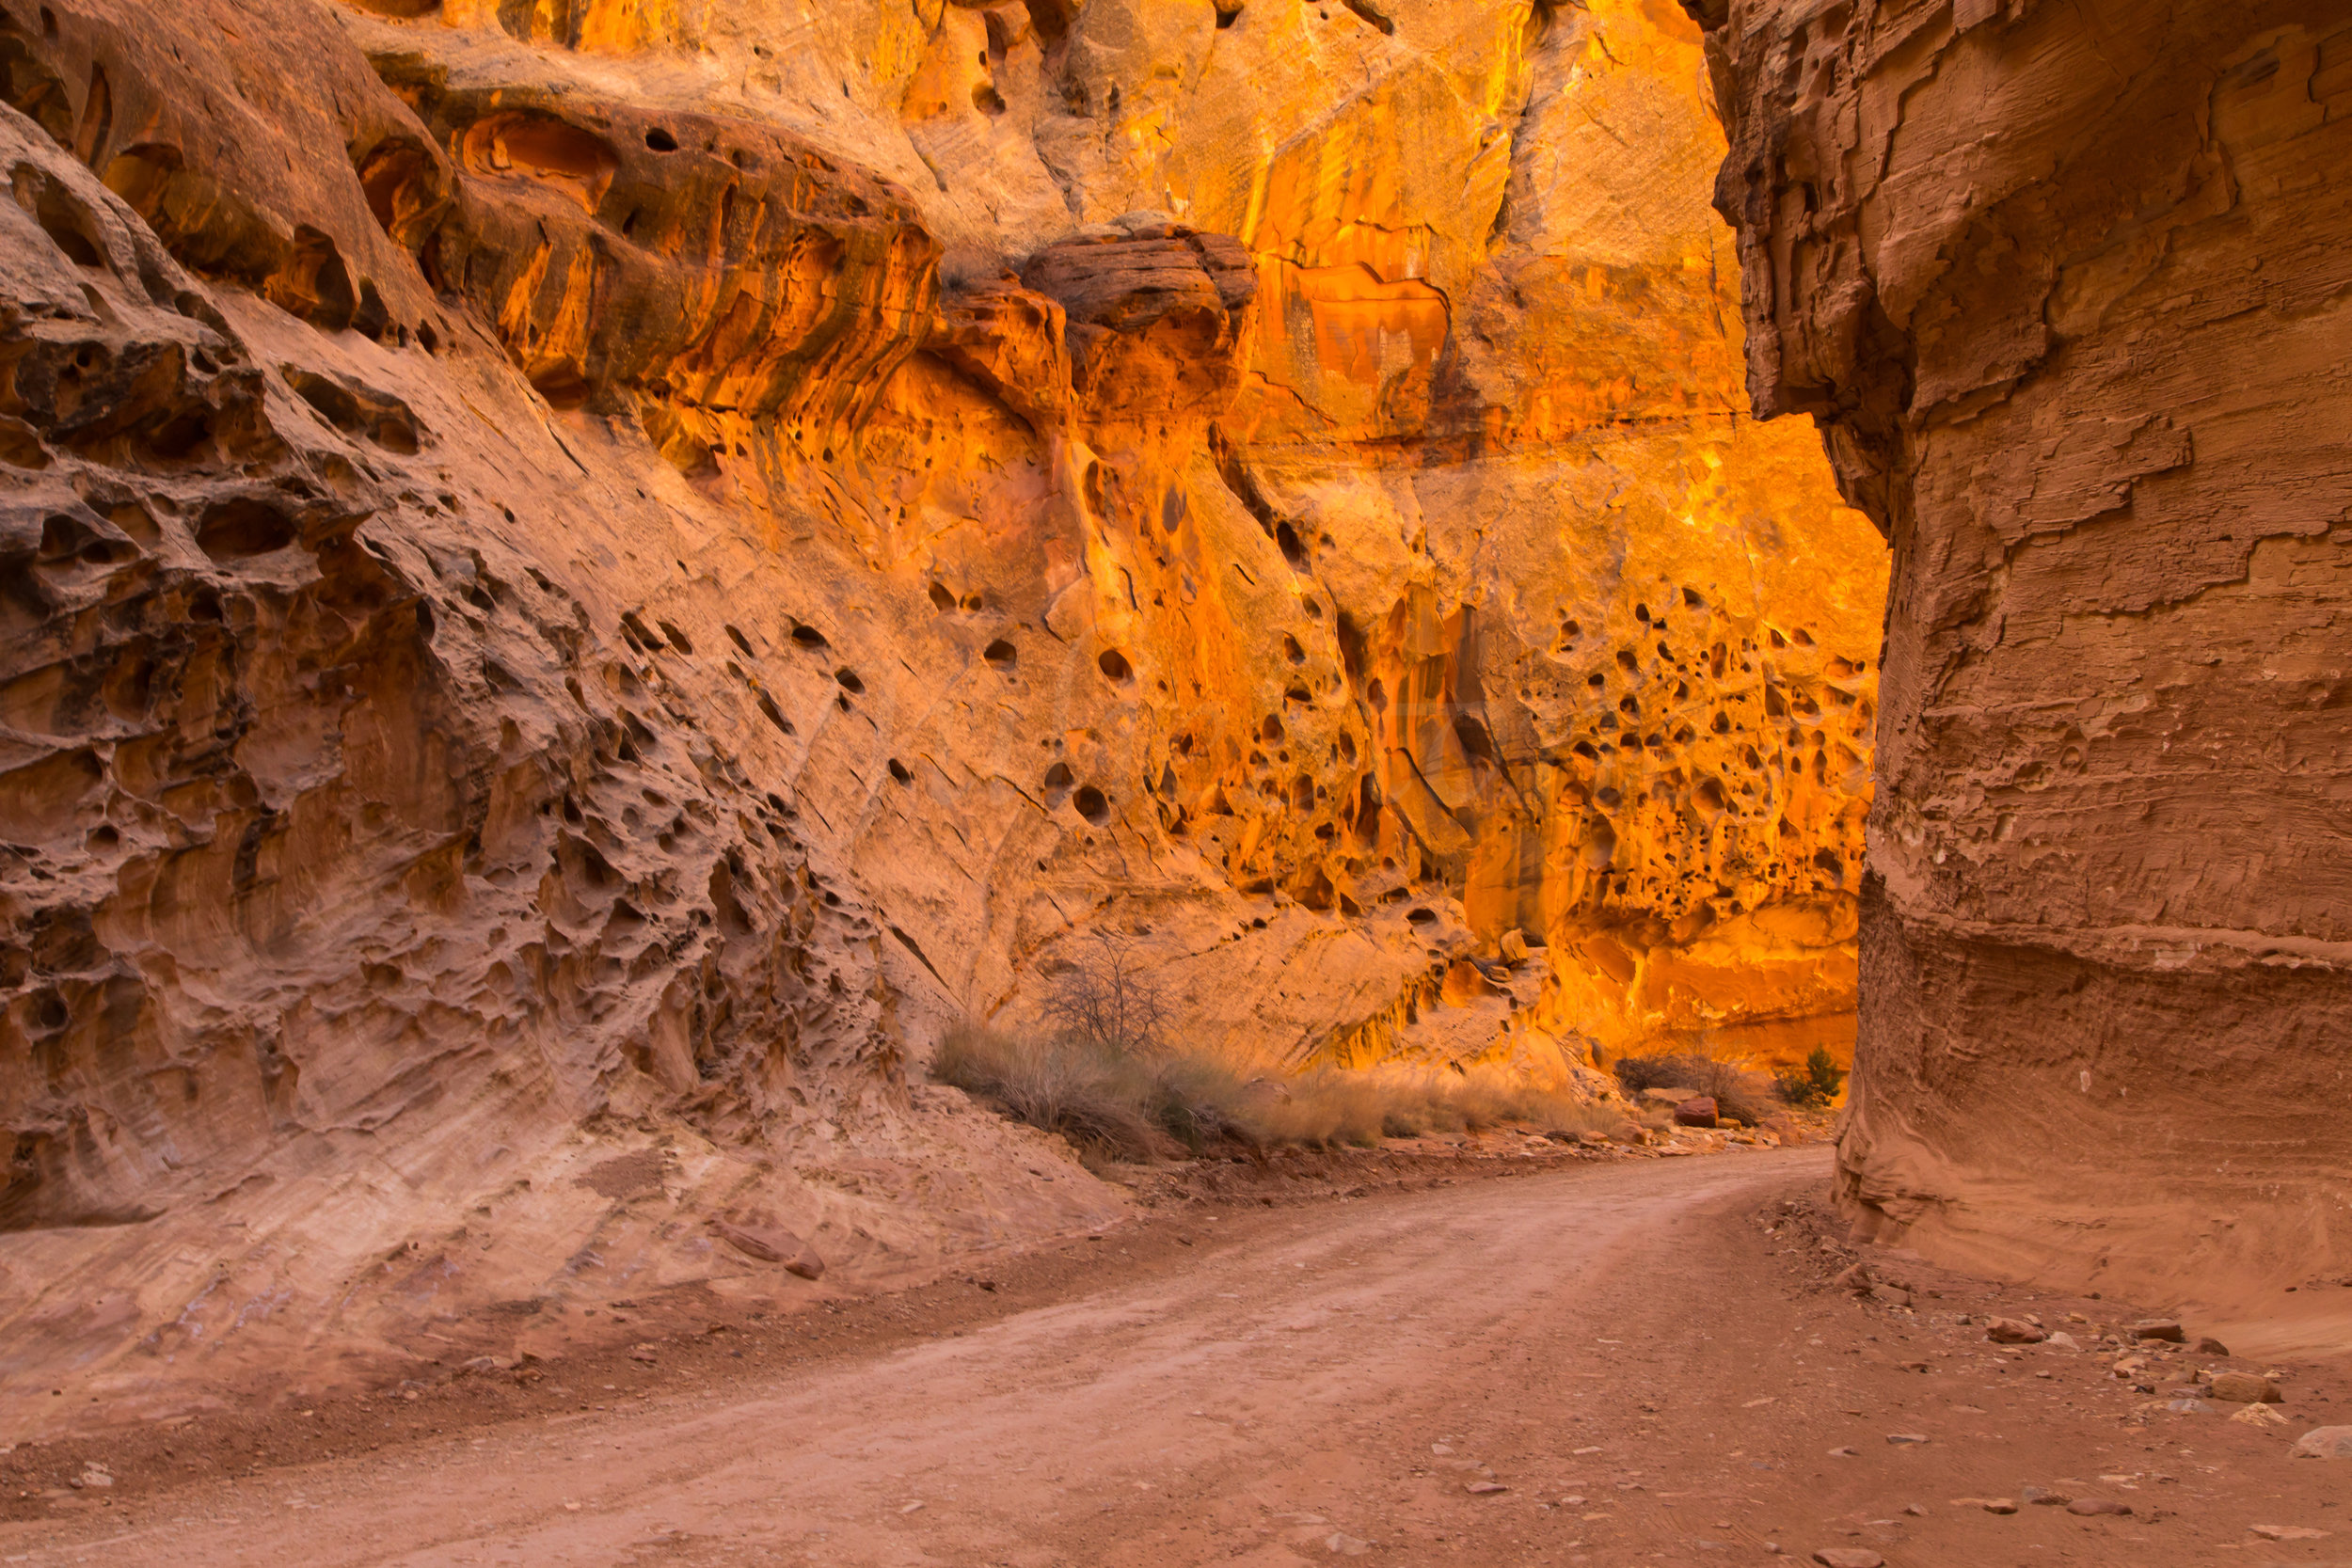 Capitol Reef National Park, Image # 0859